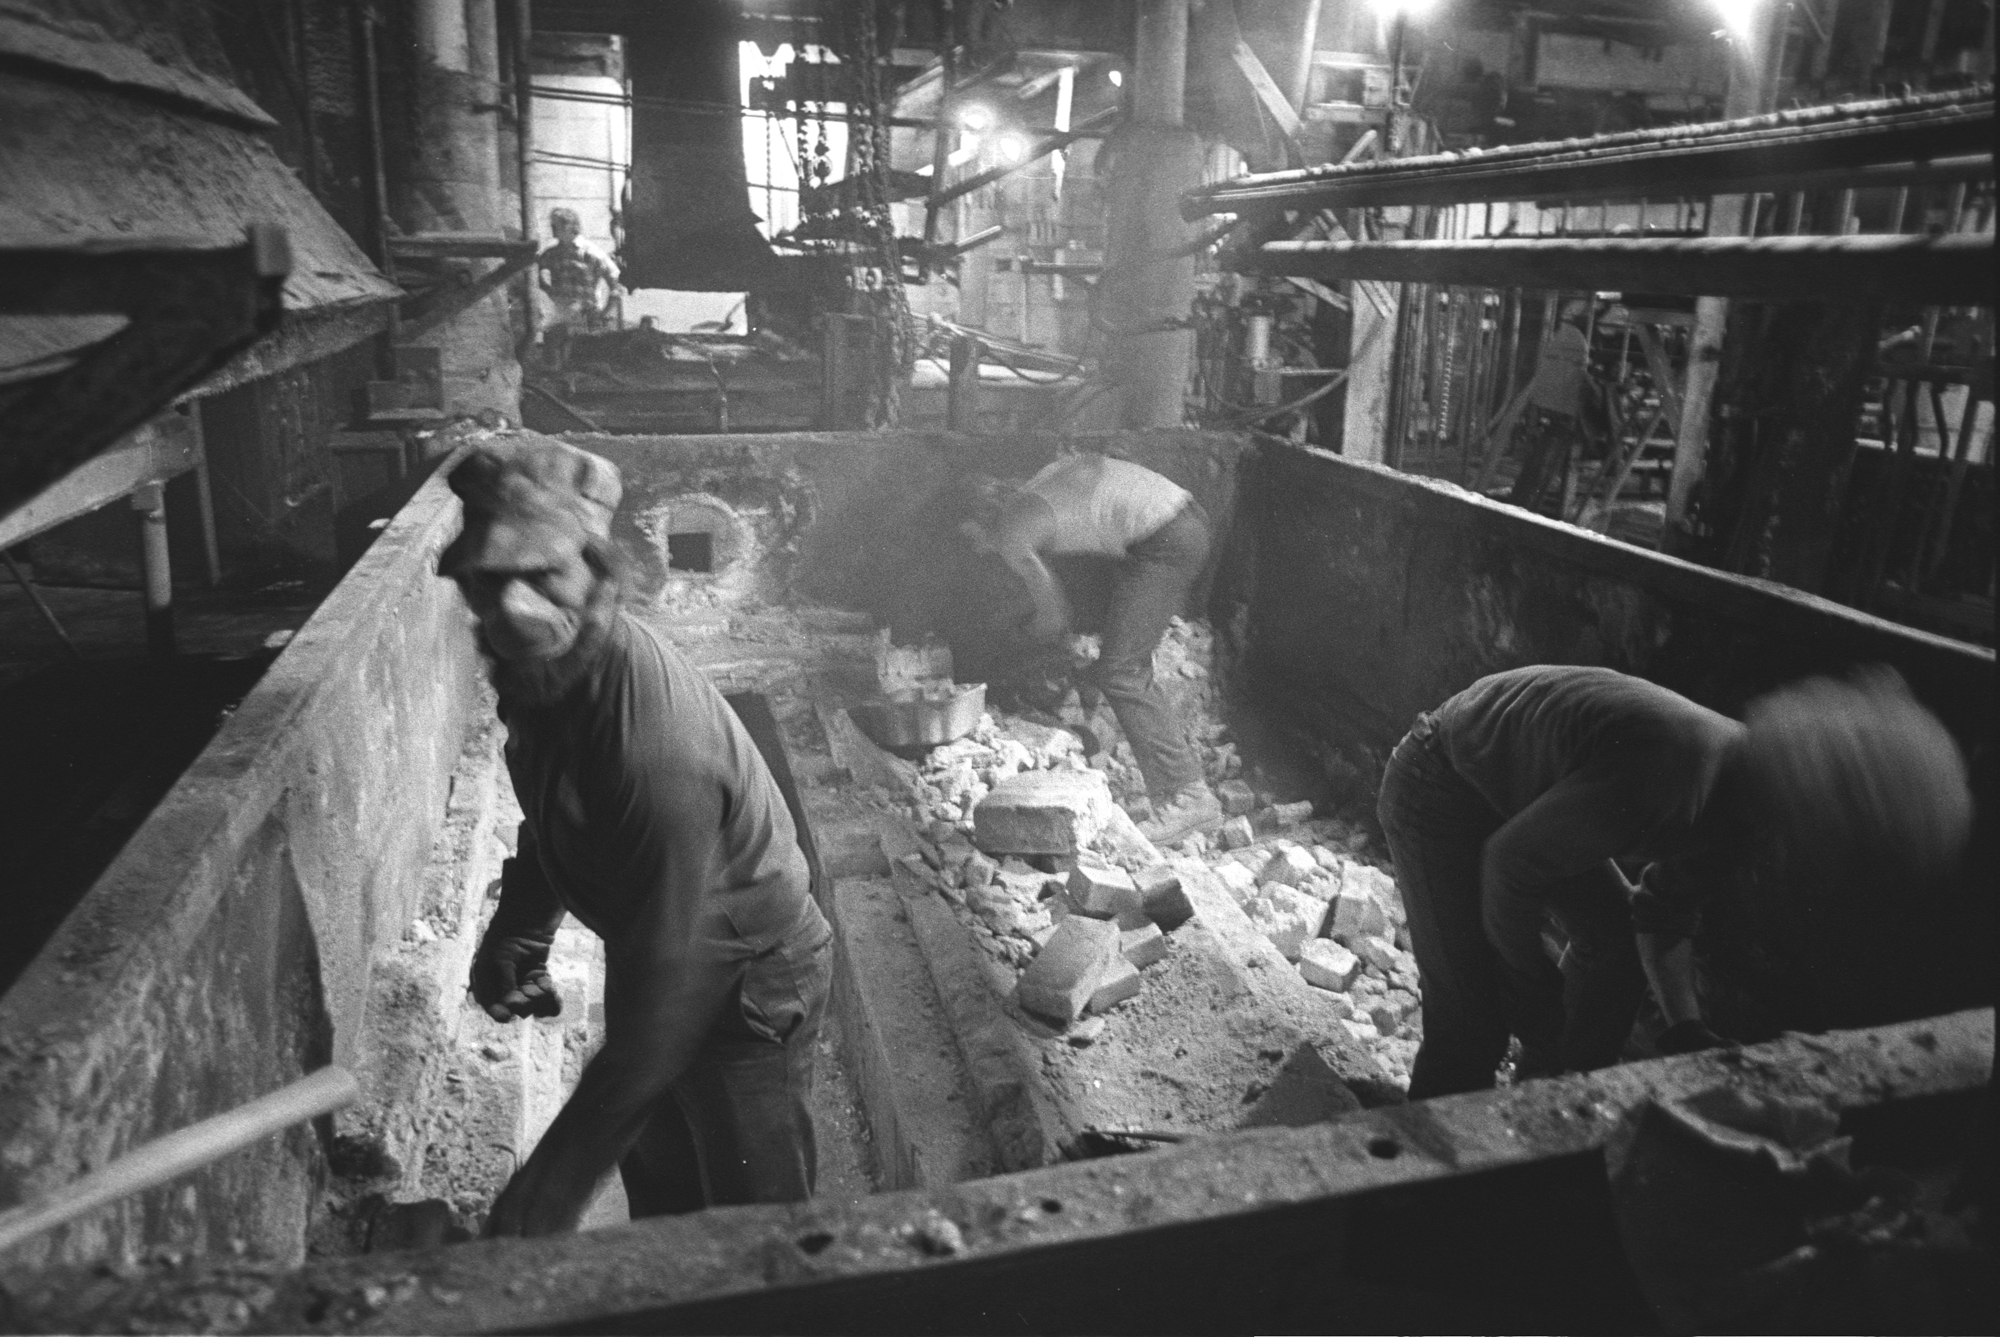 The Gilbert & Bennett wire mill manufactured goods from the late 1880's until it was abandoned in 1986.  People worked in the factory for over 150 years.     These photographs capture the factory's present life, it's life after life.